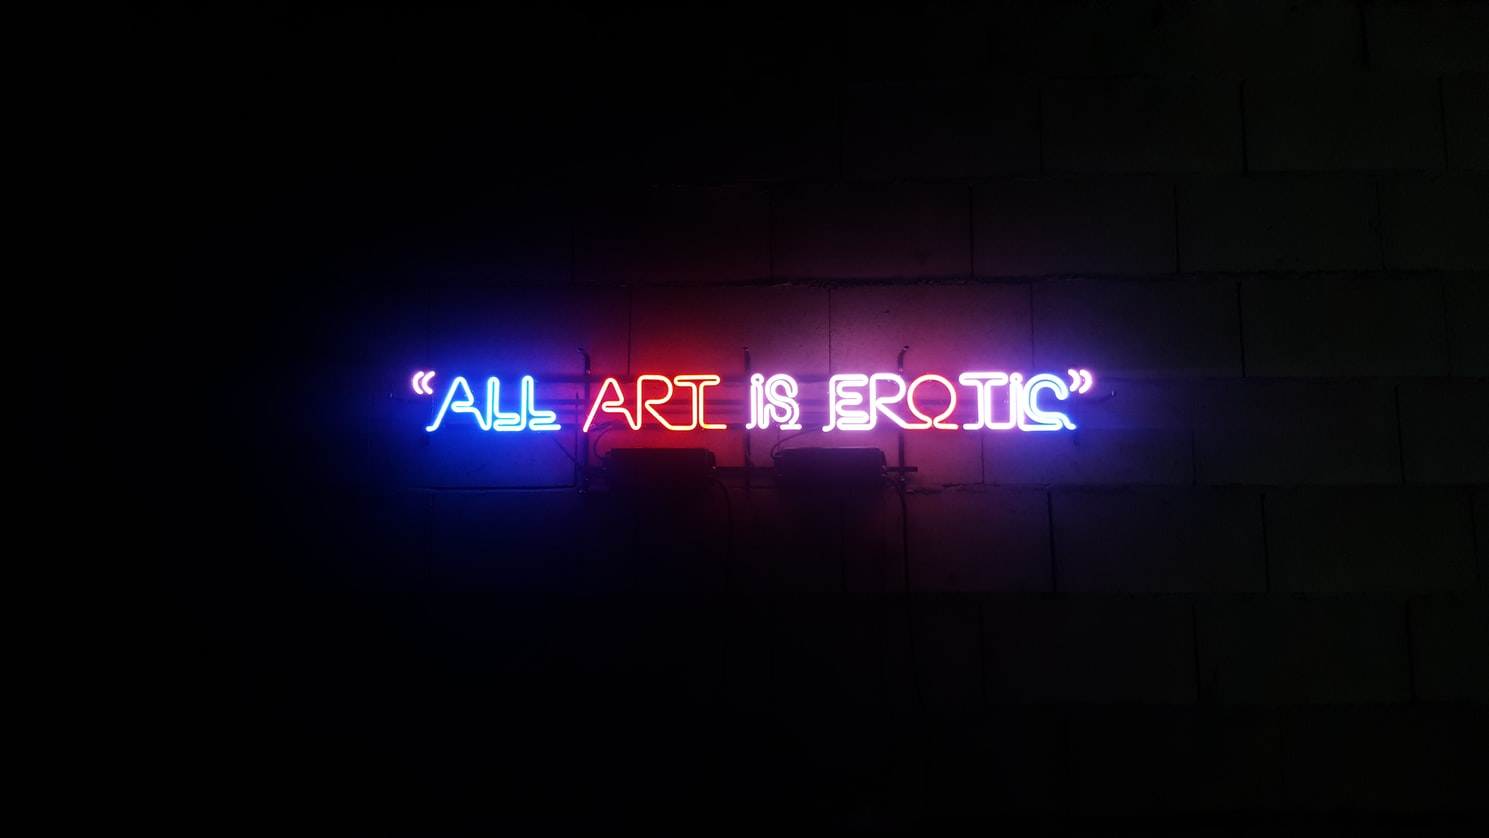 Why investing in art? Surely for personal gratification and for the intrinsic value of a work of art